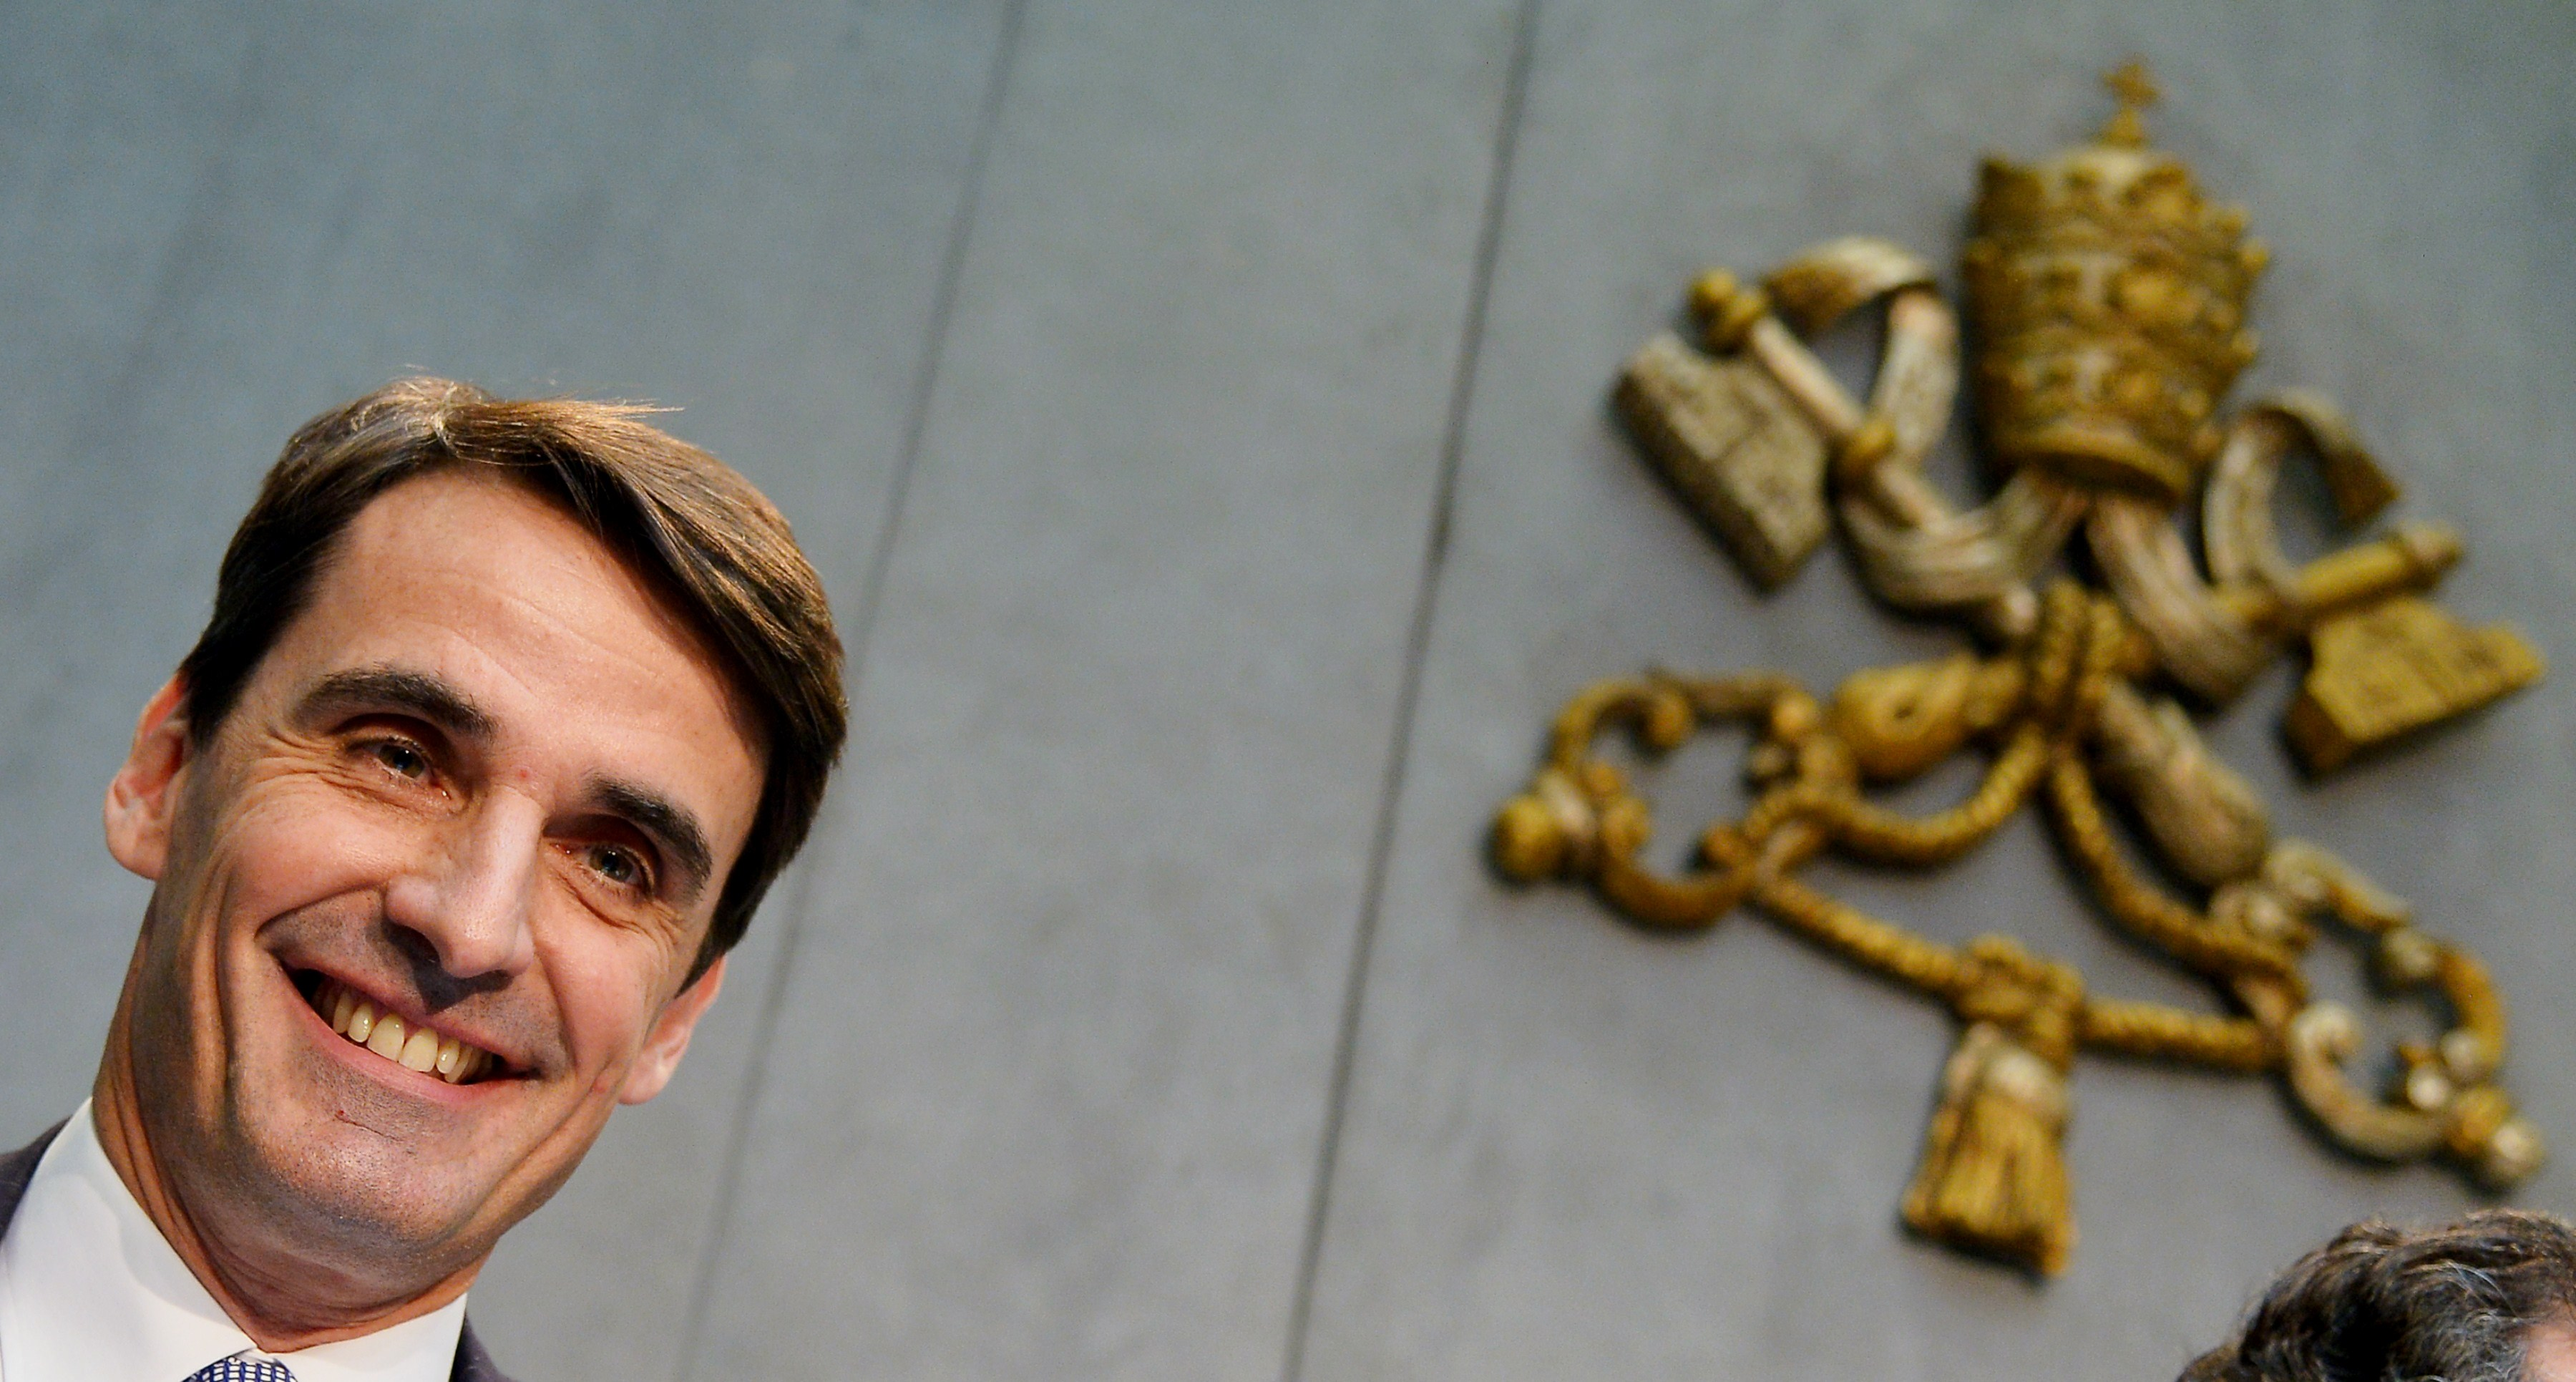 Jean-Baptiste de Franssu is going to take the Vatican's bank back to its roots in an effort to end the corruption that's overshadowed it for years.